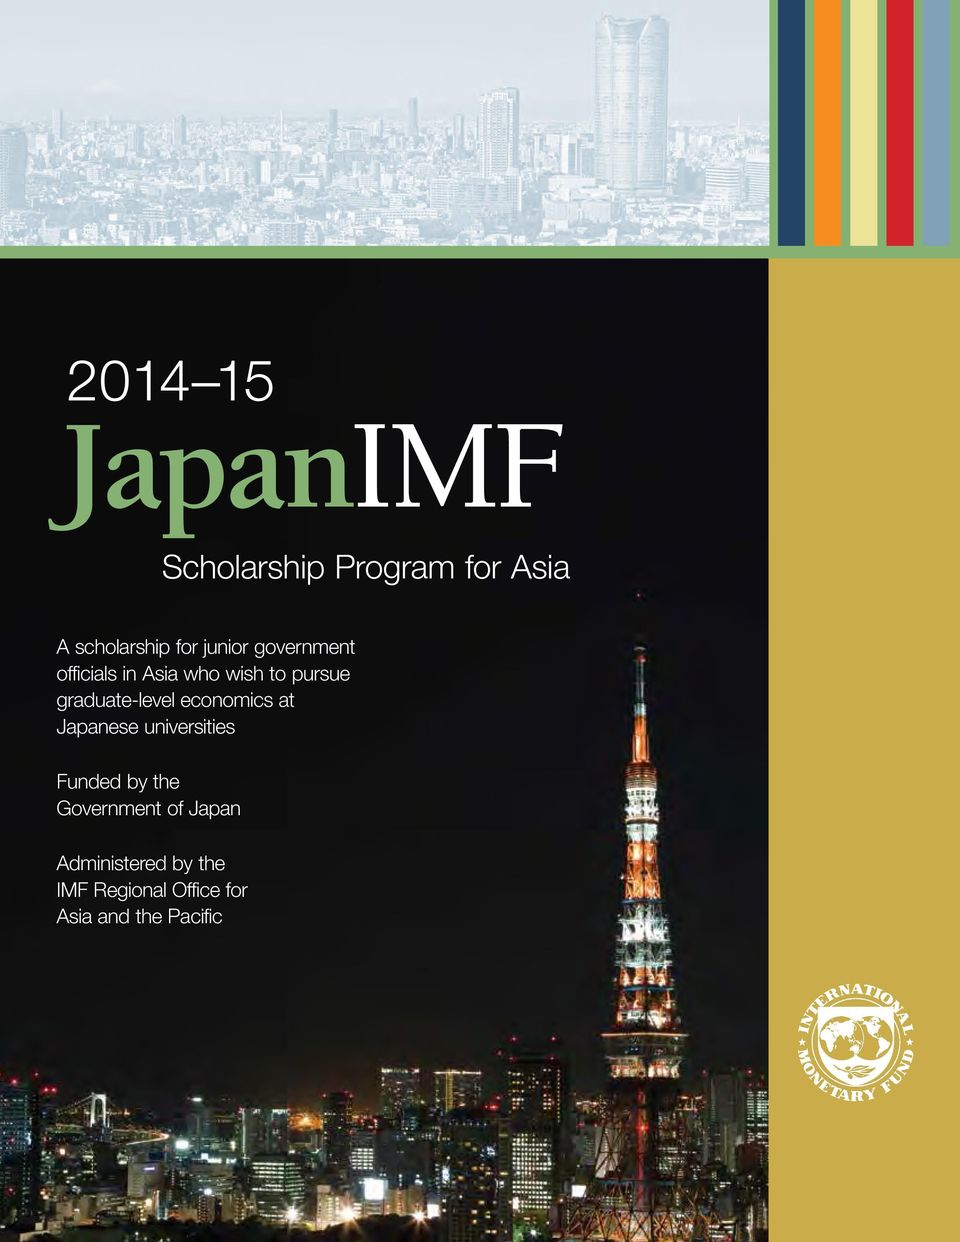 graduate-level economics at Japanese universities Funded by the